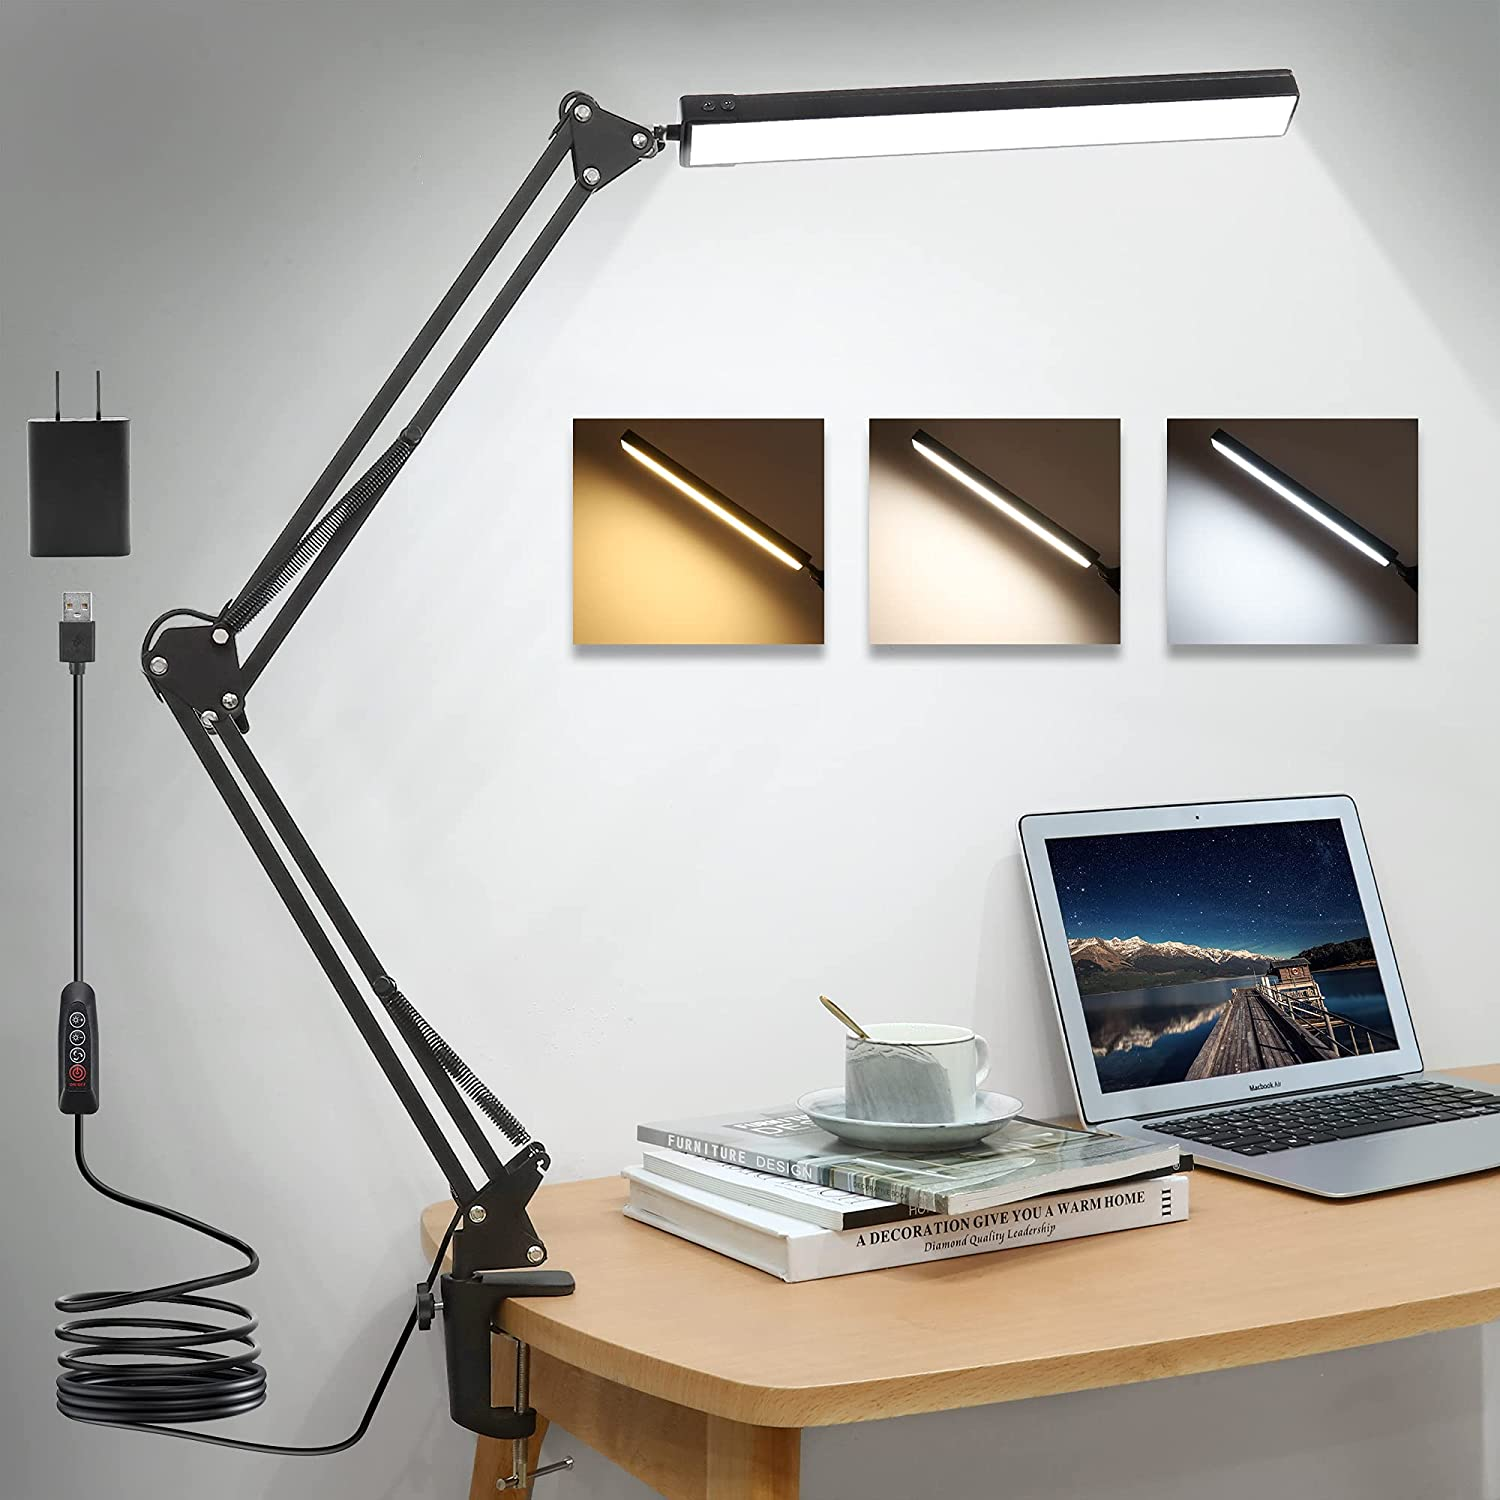 Desk Lamp for Home Office, PESIVI Eye-Caring LED Stepless Dimmable Architect Table Light, Memory Function Adjustable Swing Arm Clamp Lamp with 3 Color Modes for Drawing Craft Study, Includes Adapter